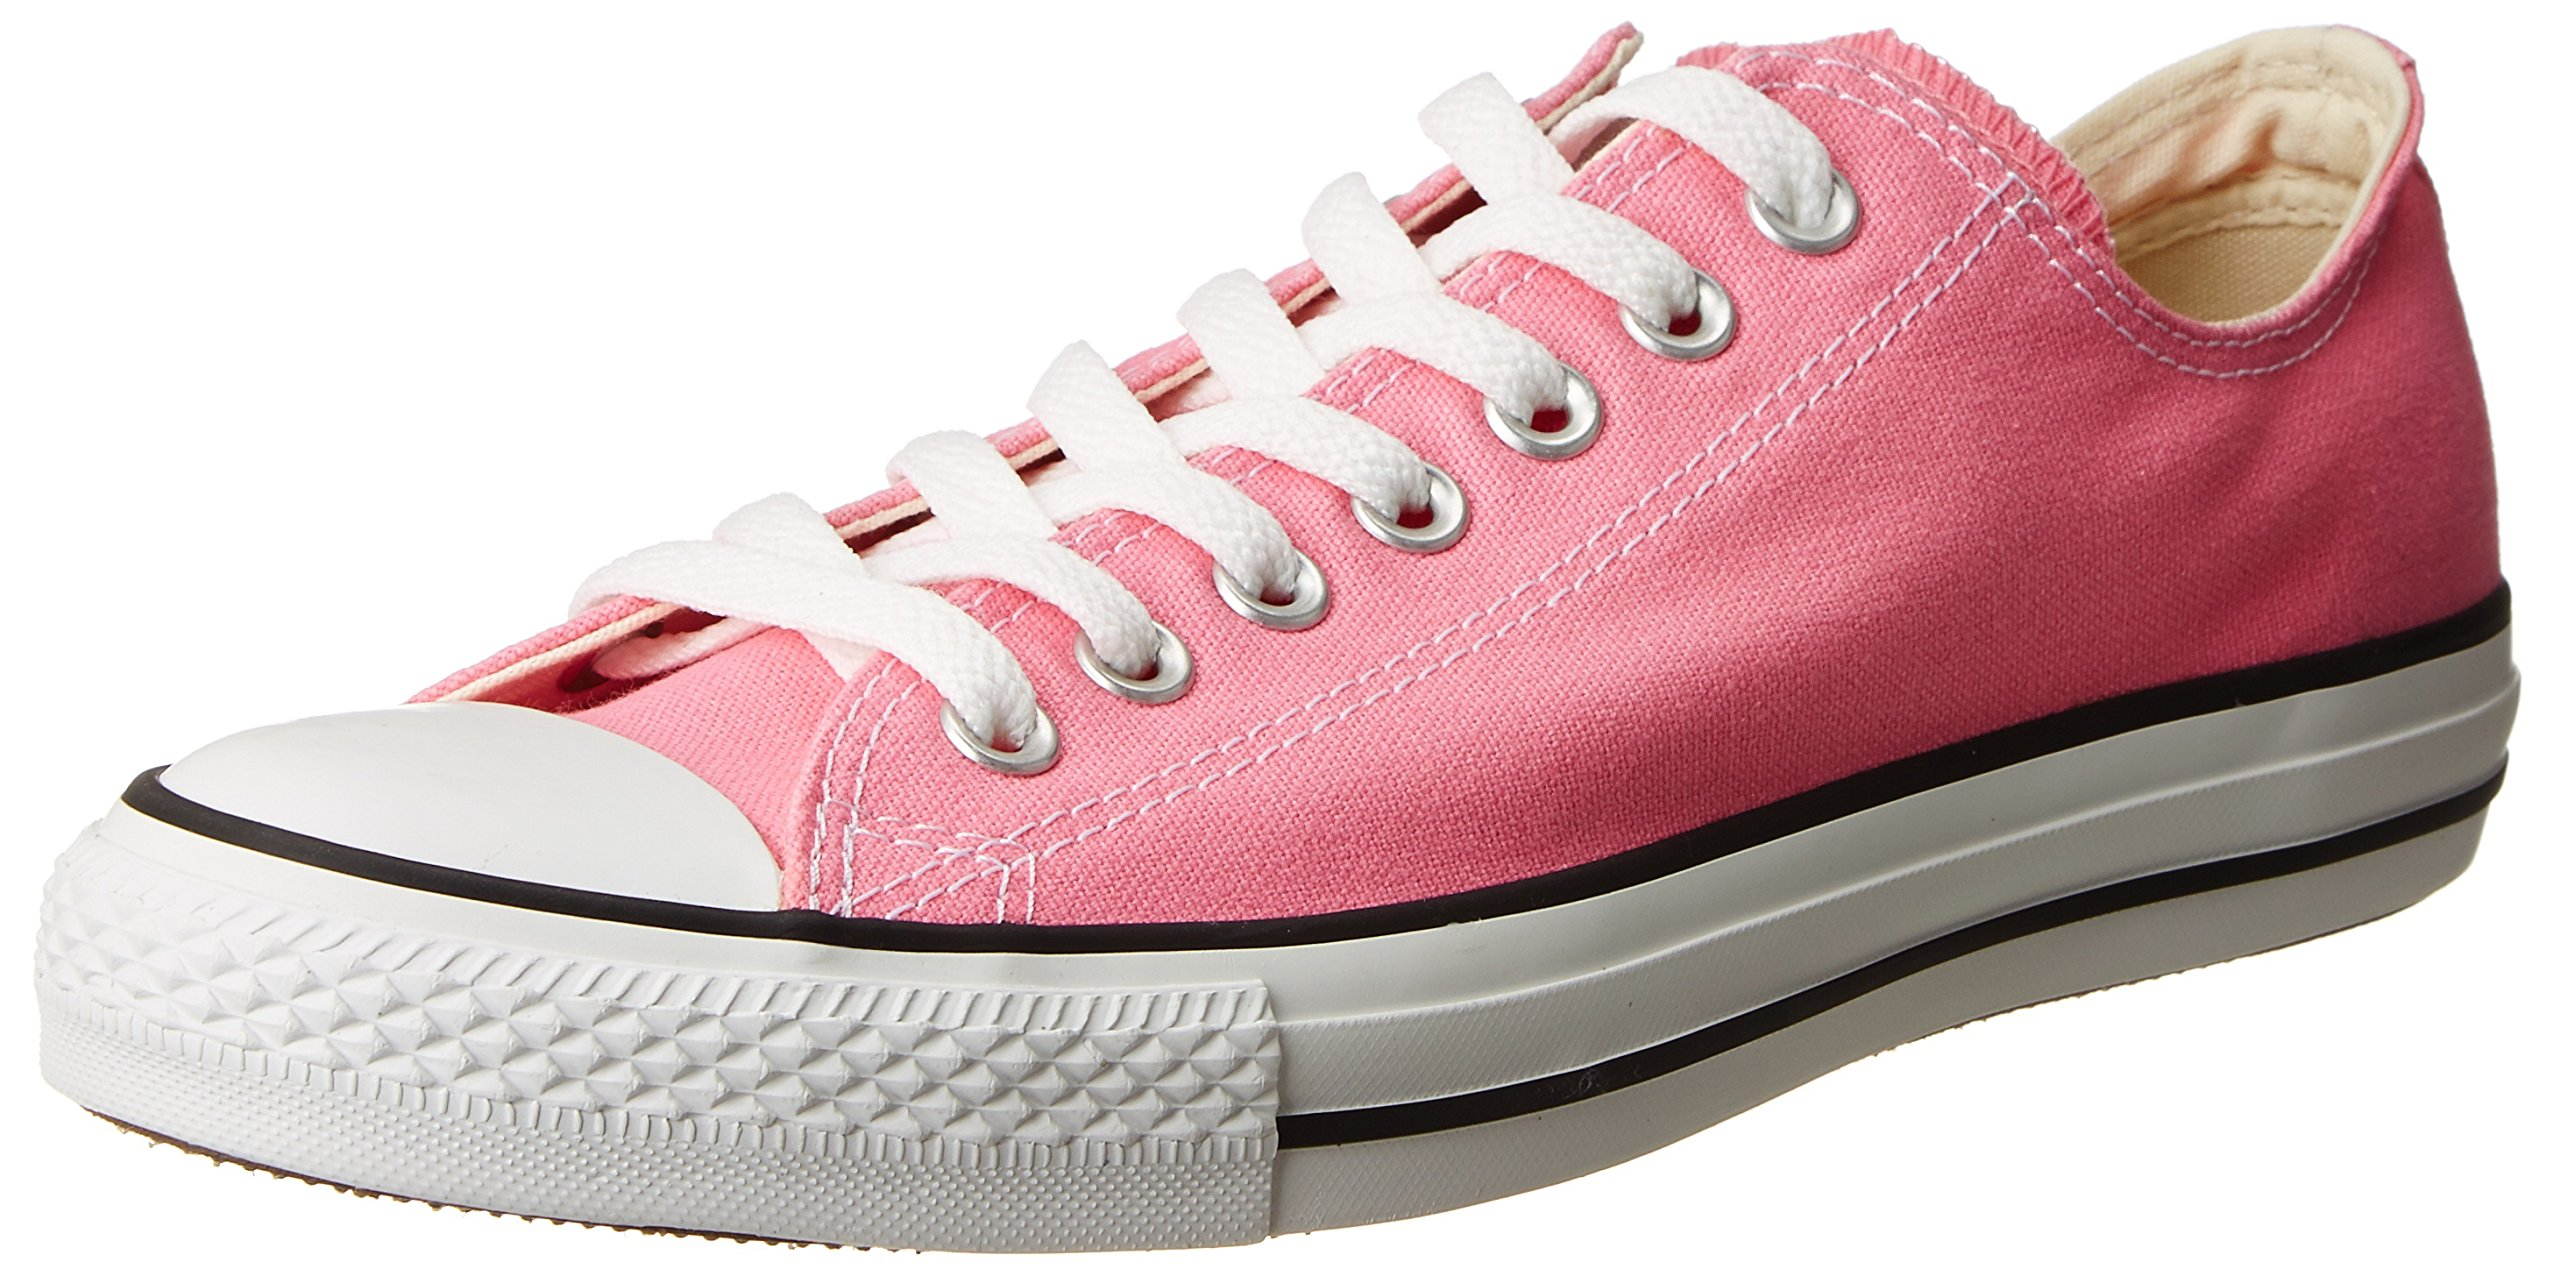 Converse Unisex Chuck Taylor All Star Ox Low Top Classic Pink Sneakers - 7 B(M) US Women / 5 D(M) US Men by Converse